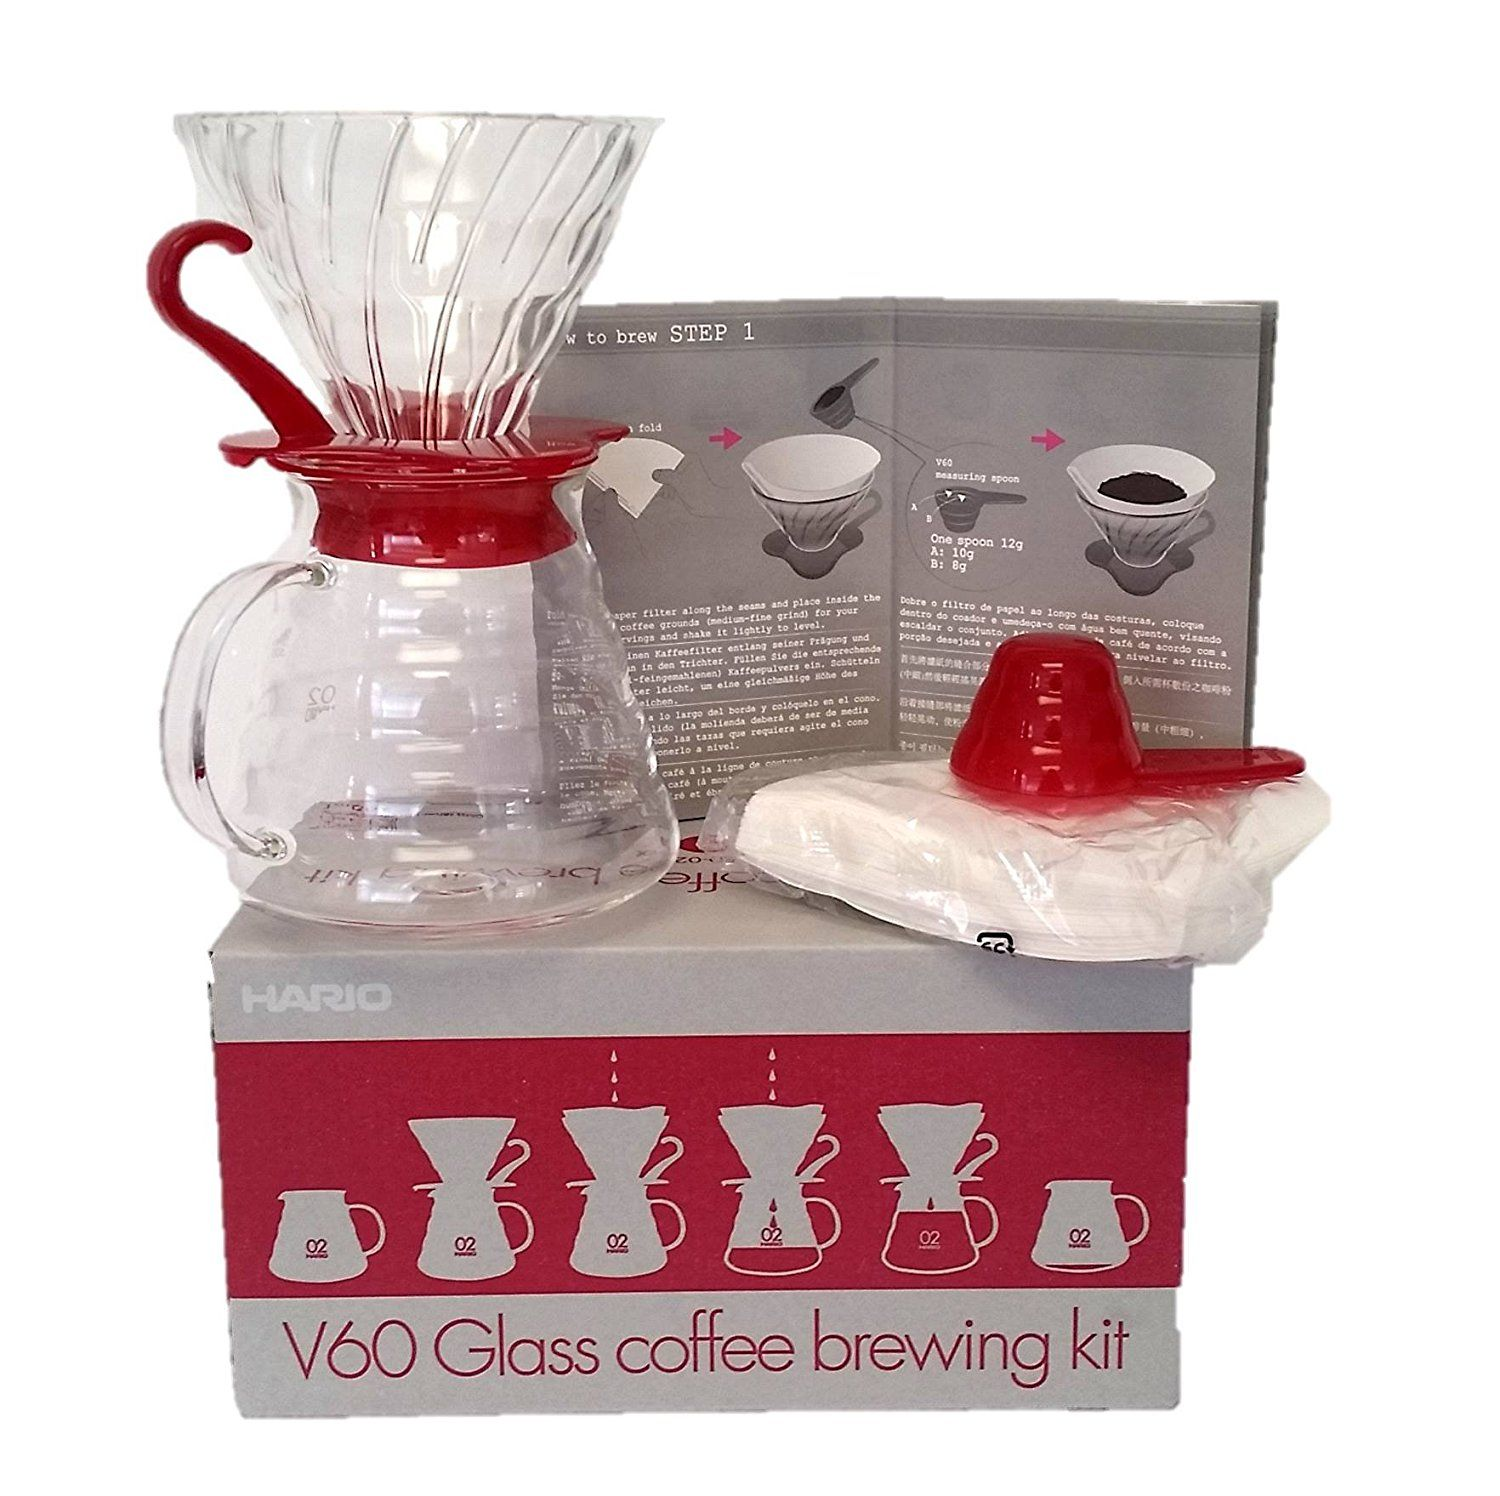 Kaffeefilter Amazon Hario V60 Glass Coffee Brewing Kit V60 Coffee Hand Infusion Set